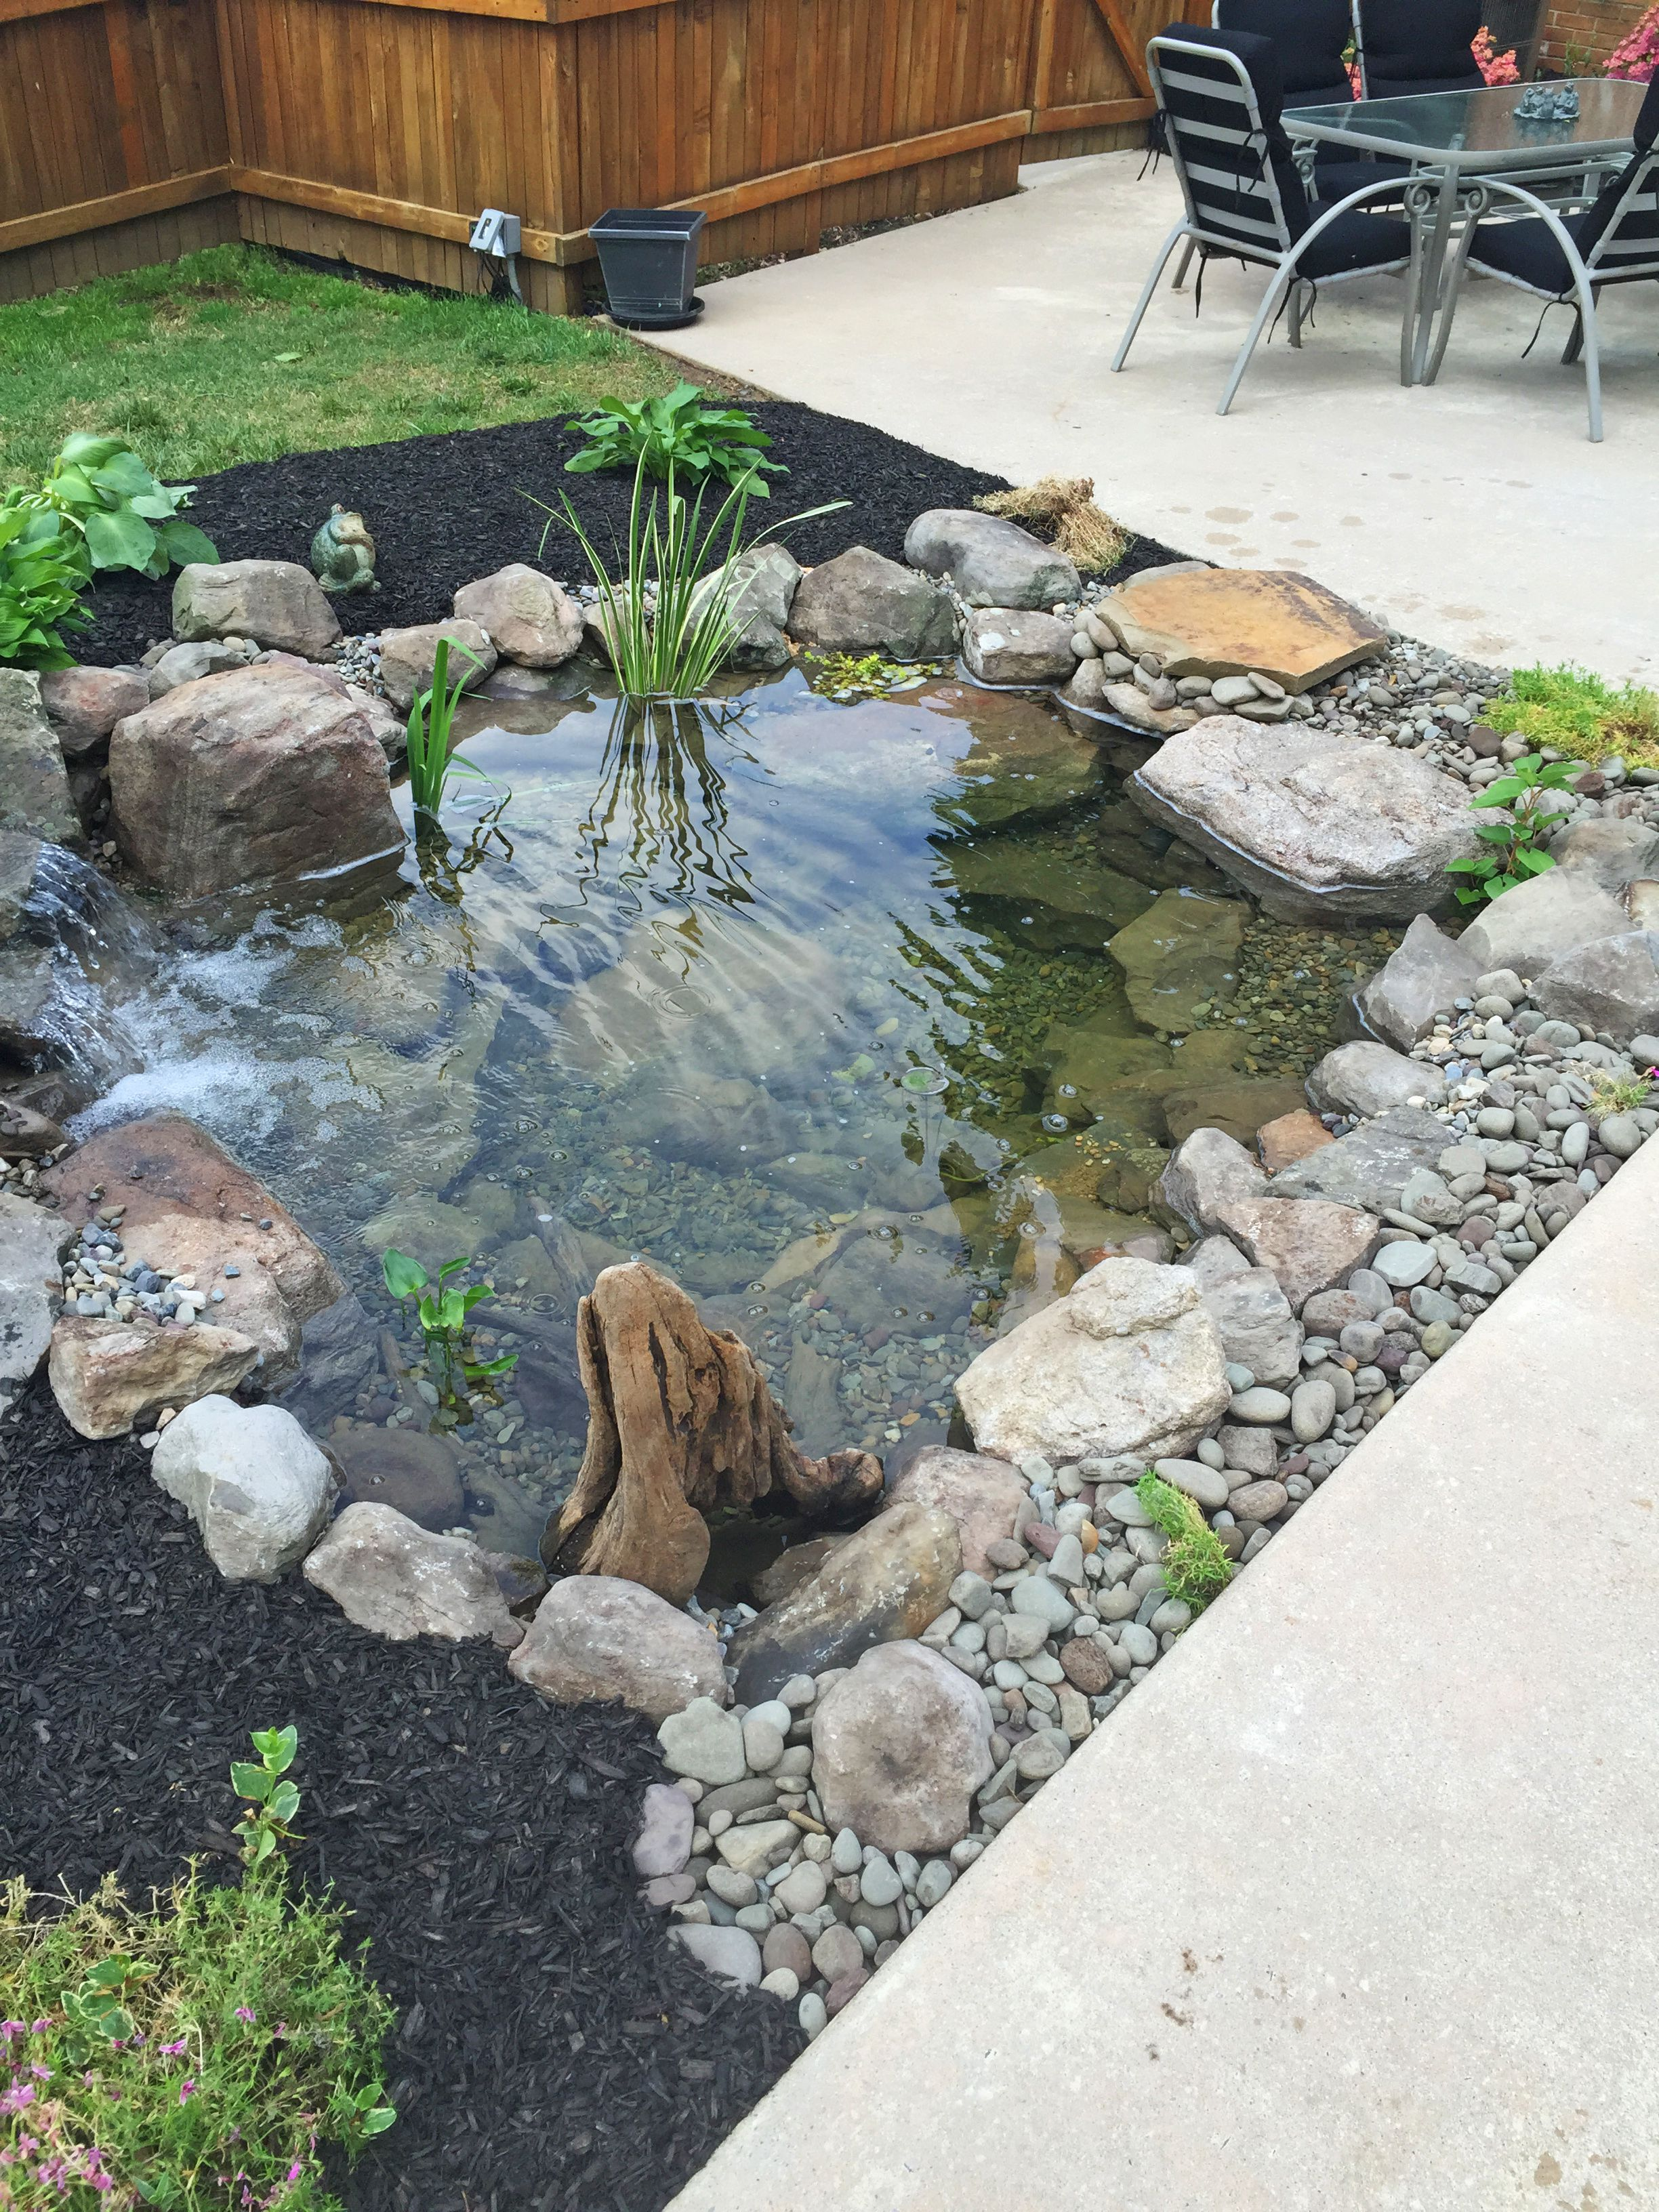 backyard fish pond waterfall koi water garden waterscapes